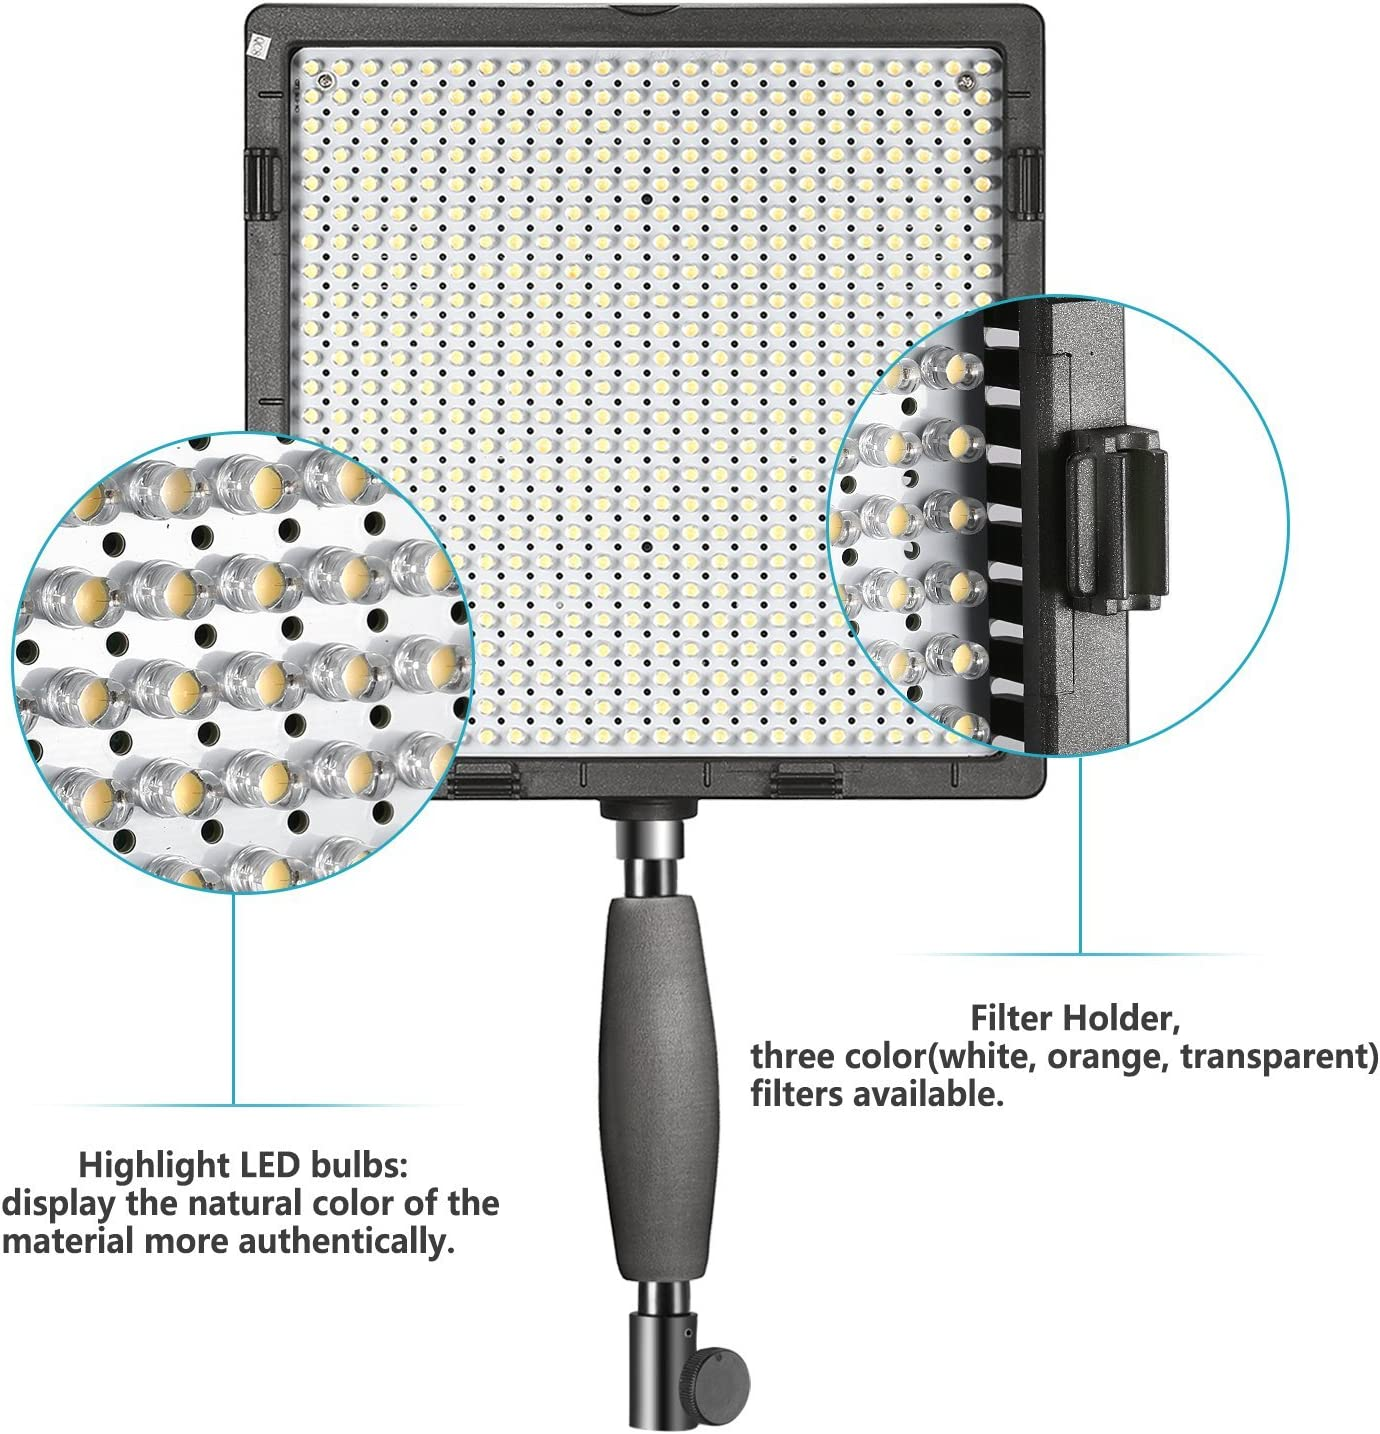 Samsung and Olympus Digital SLR Cameras Sony LED Light 3200K to 5600K for Canon Nikon Panasonic Pentax Neewer/® CN-576 576PCS LED Dimmable Ultra High Power Panel Digital Camera // Camcorder Video Light with 3 Filters